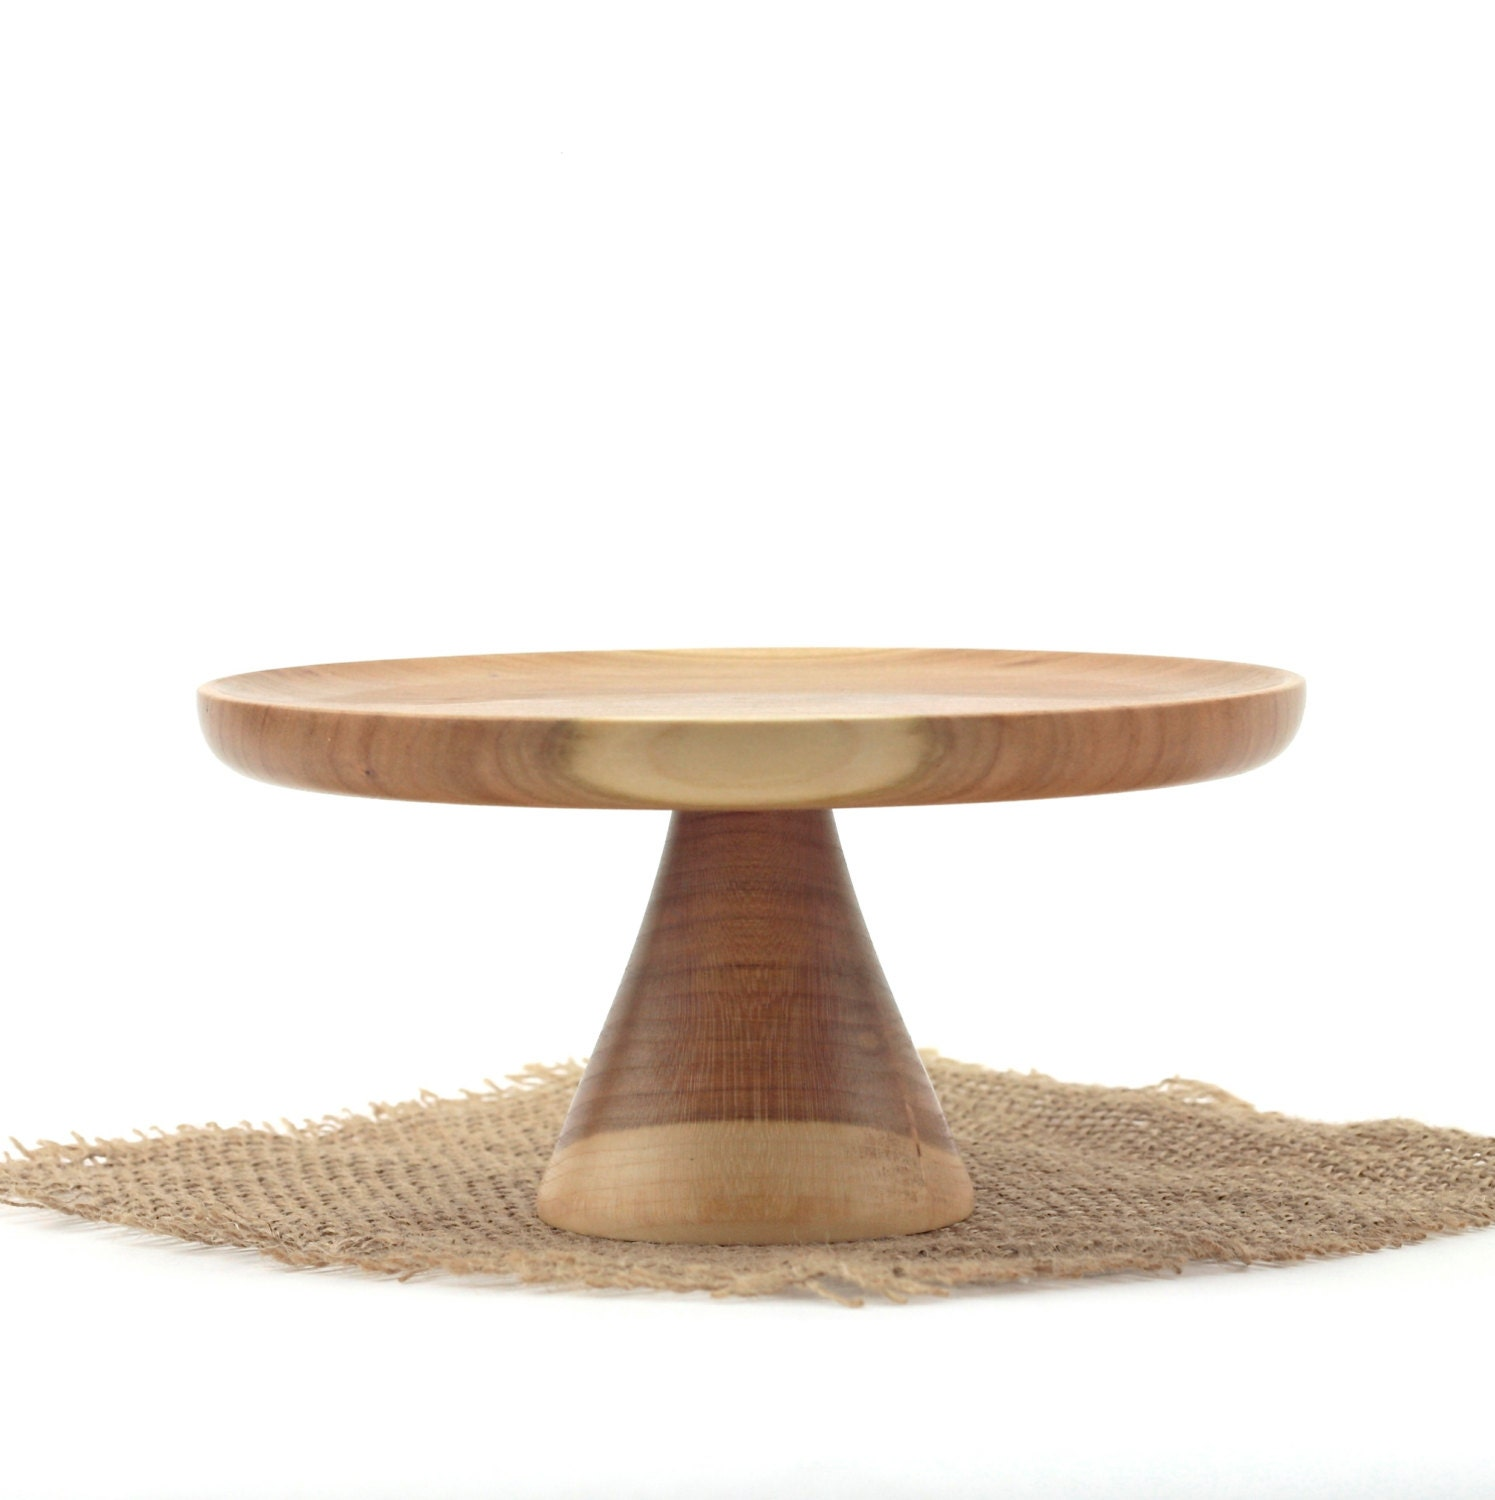 Marvelous photograph of Cherry Cake Stand with Glass Dome / Wooden Cake by WoodExpressions with #926839 color and 1495x1500 pixels